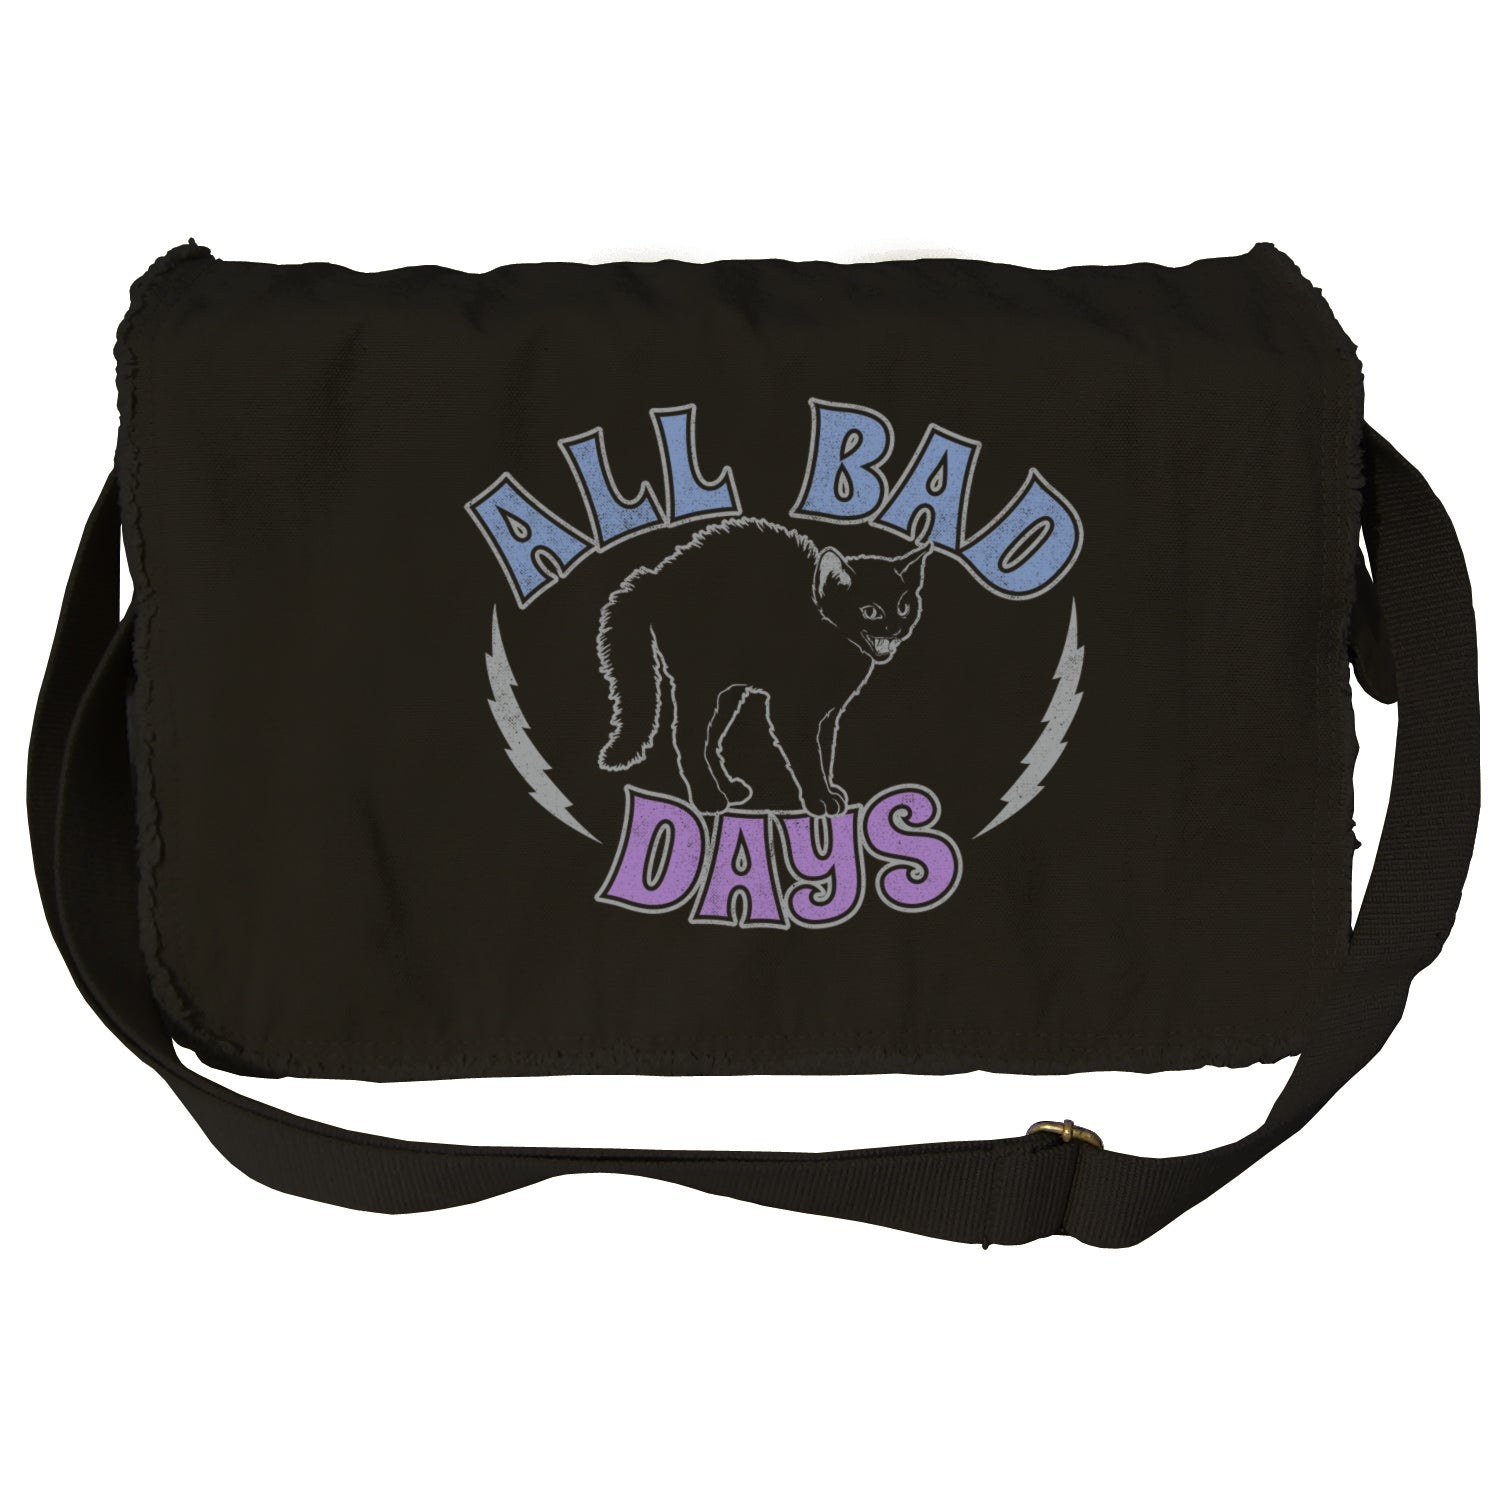 All Bad Days Messenger Bag